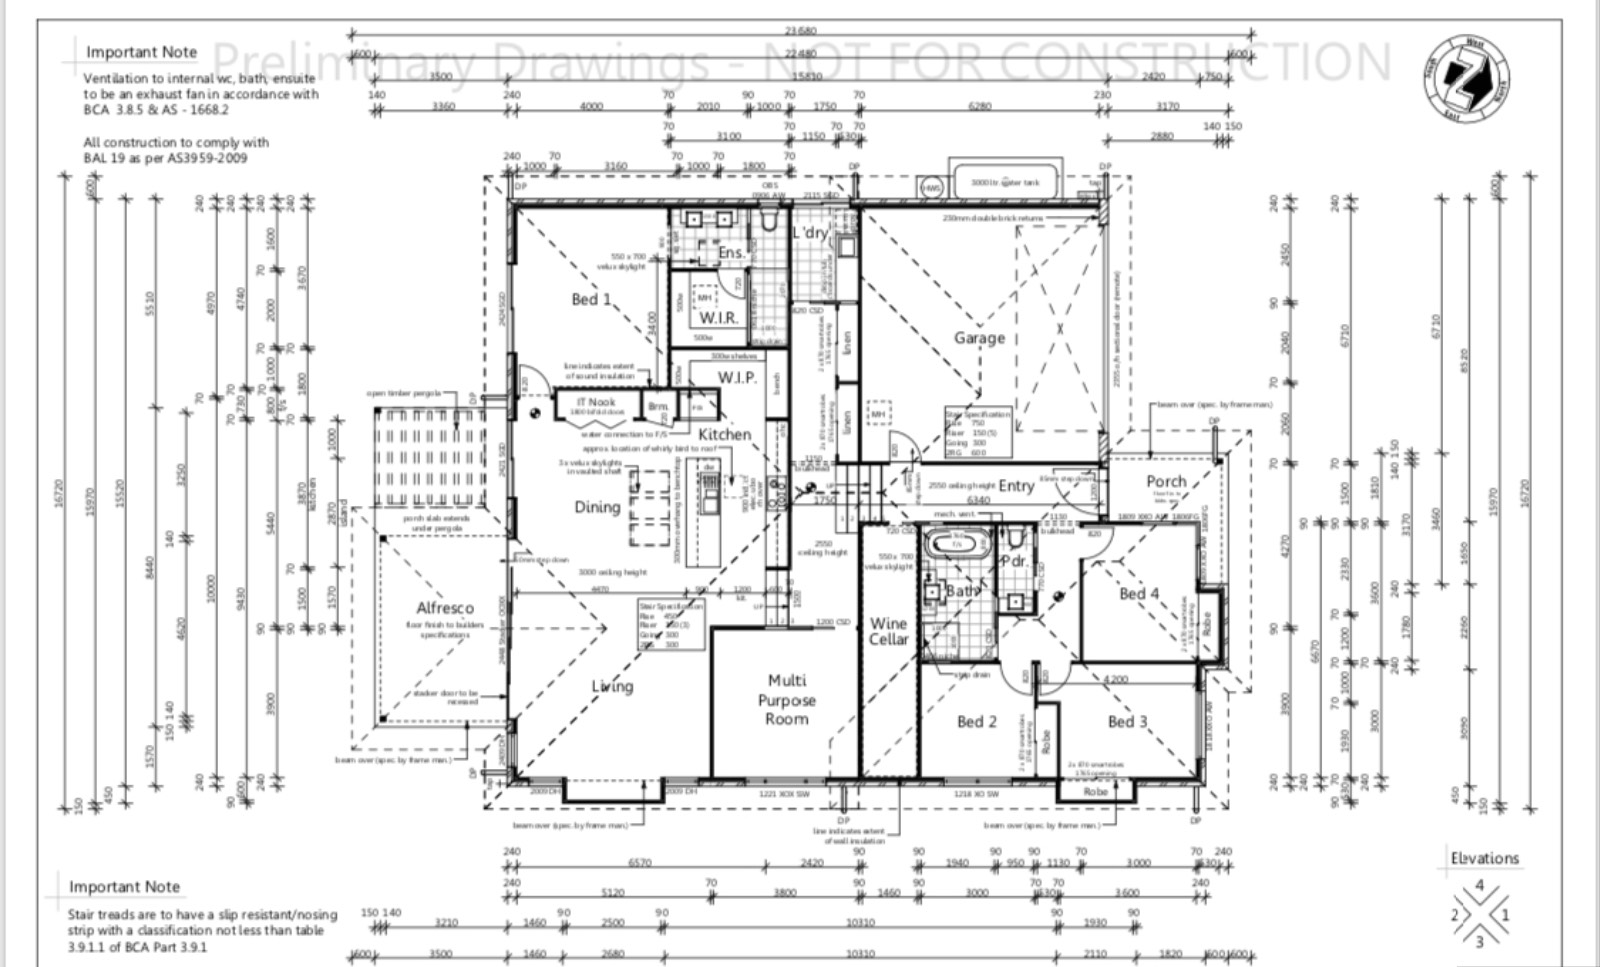 Please help convincing me we didn't make our house too big!